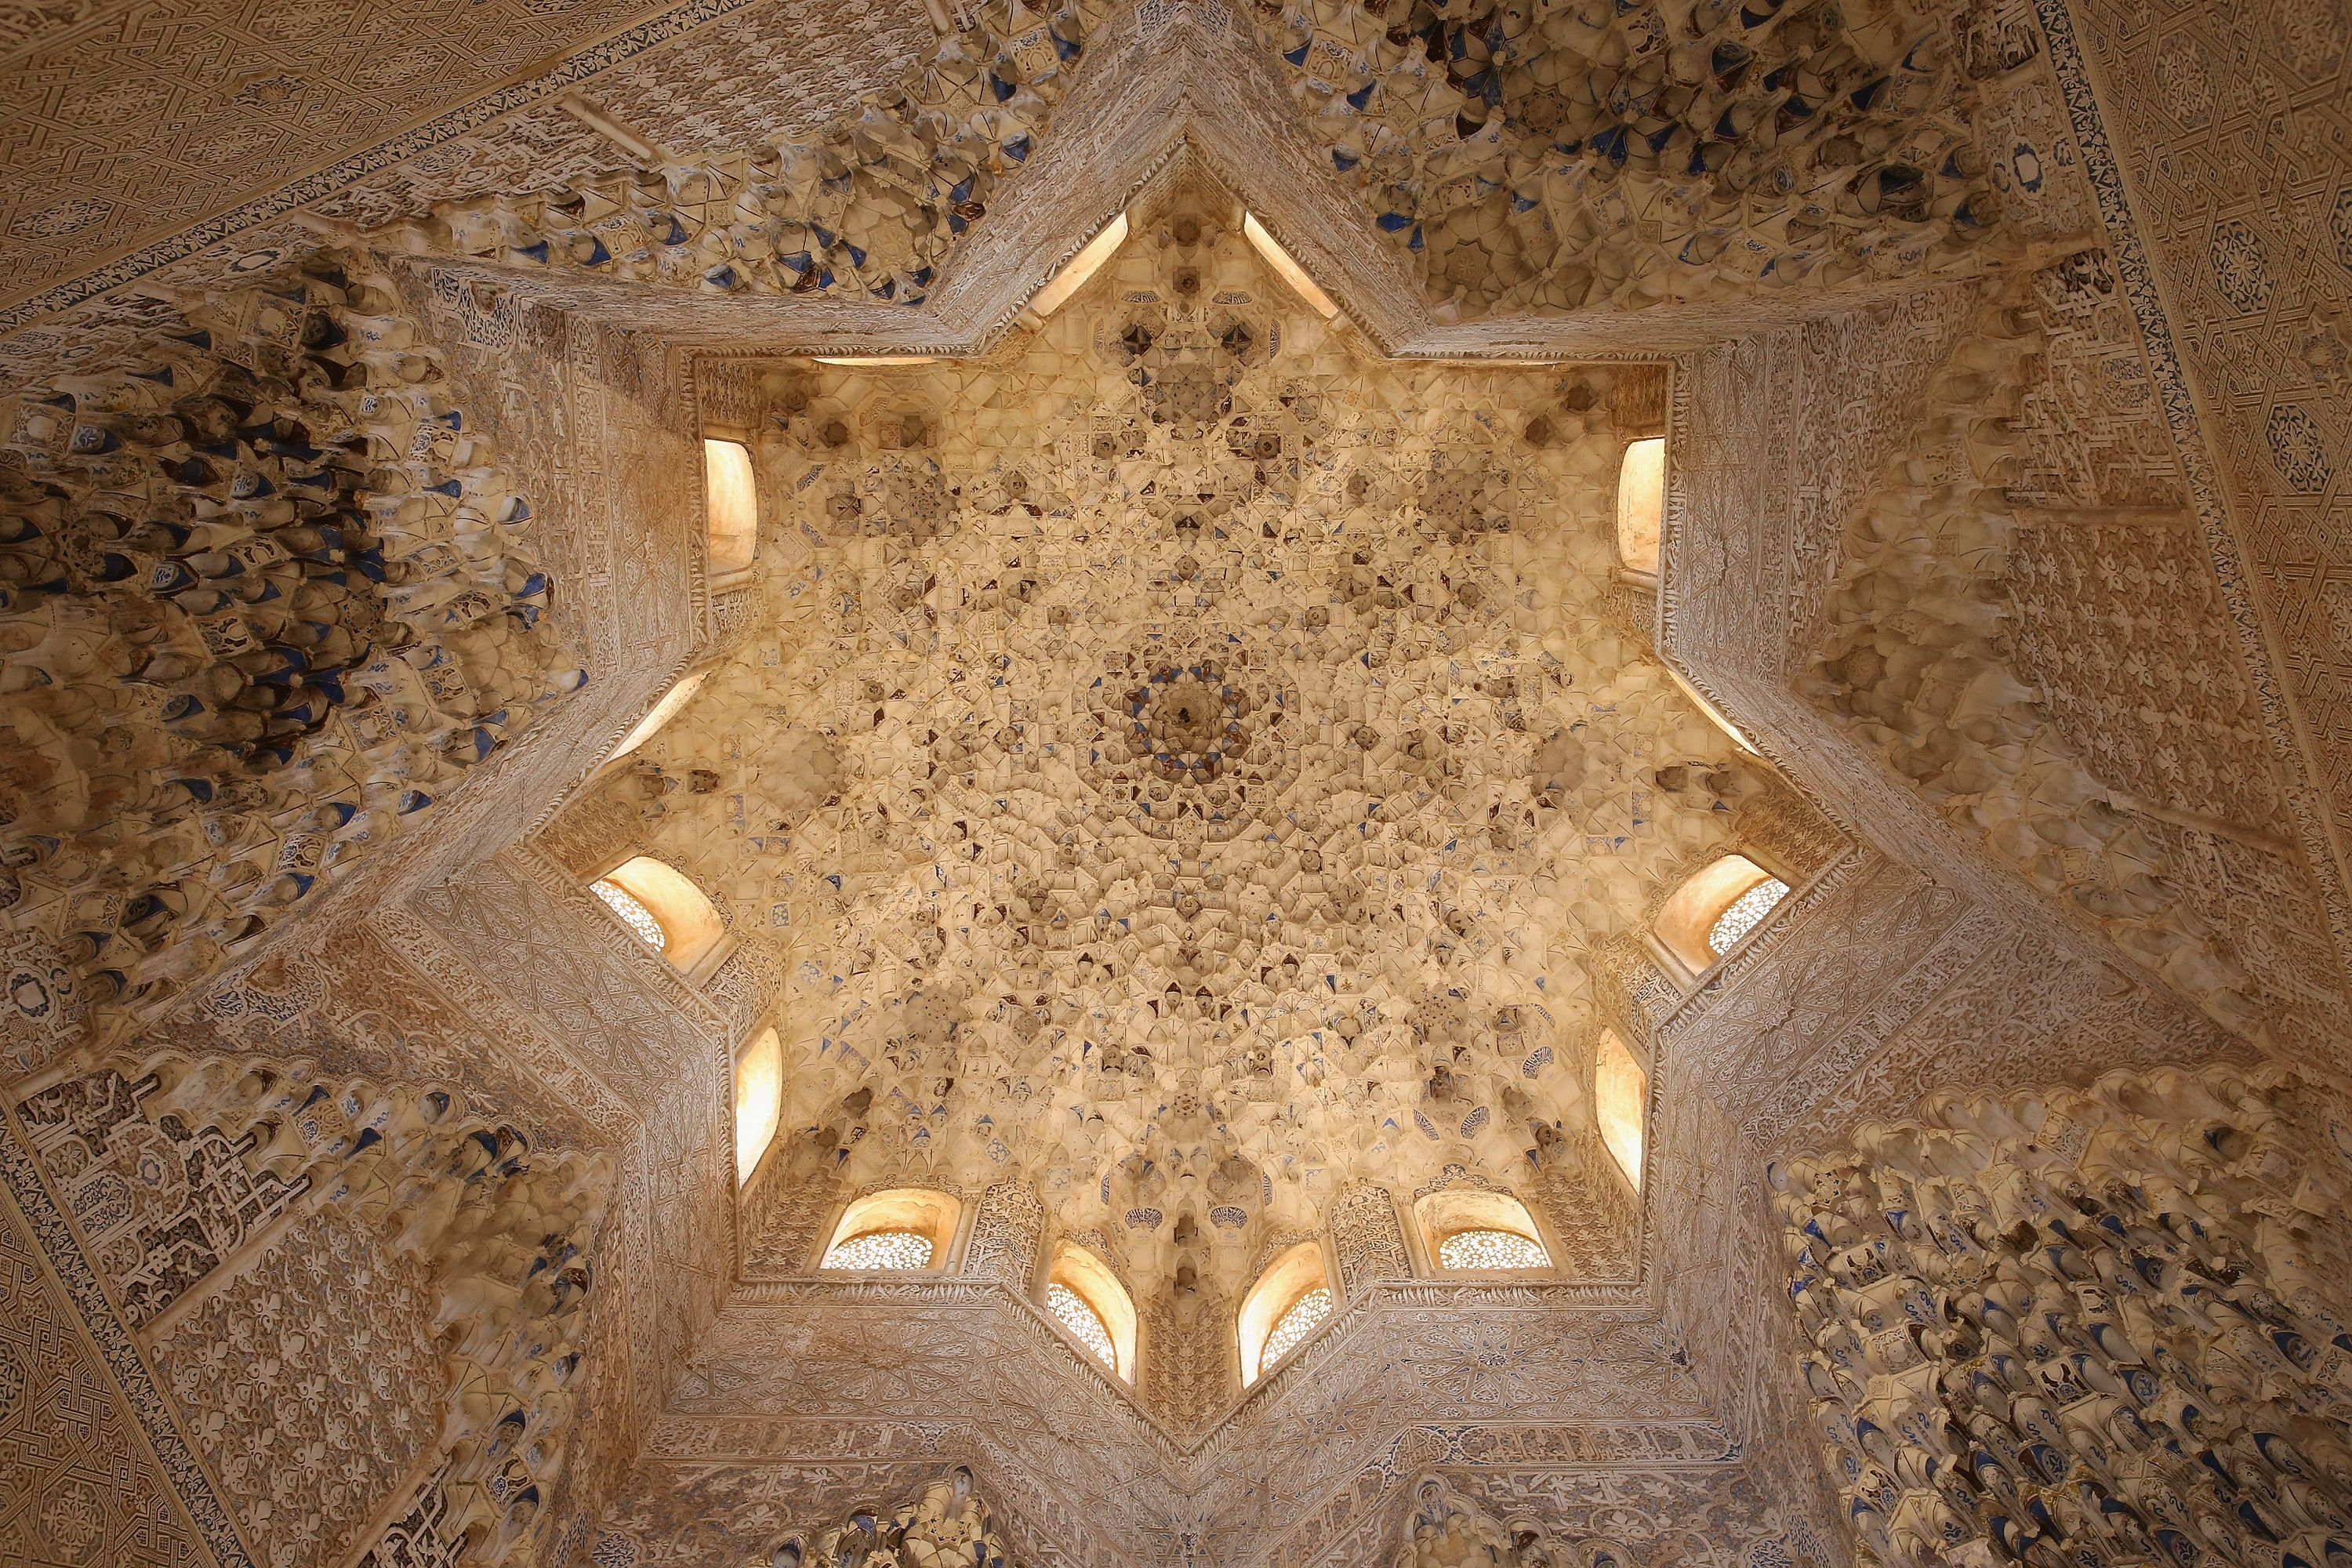 looking up at the ceiling of an ornately carved room, an 8-pointed dome with 16 windows in the sides